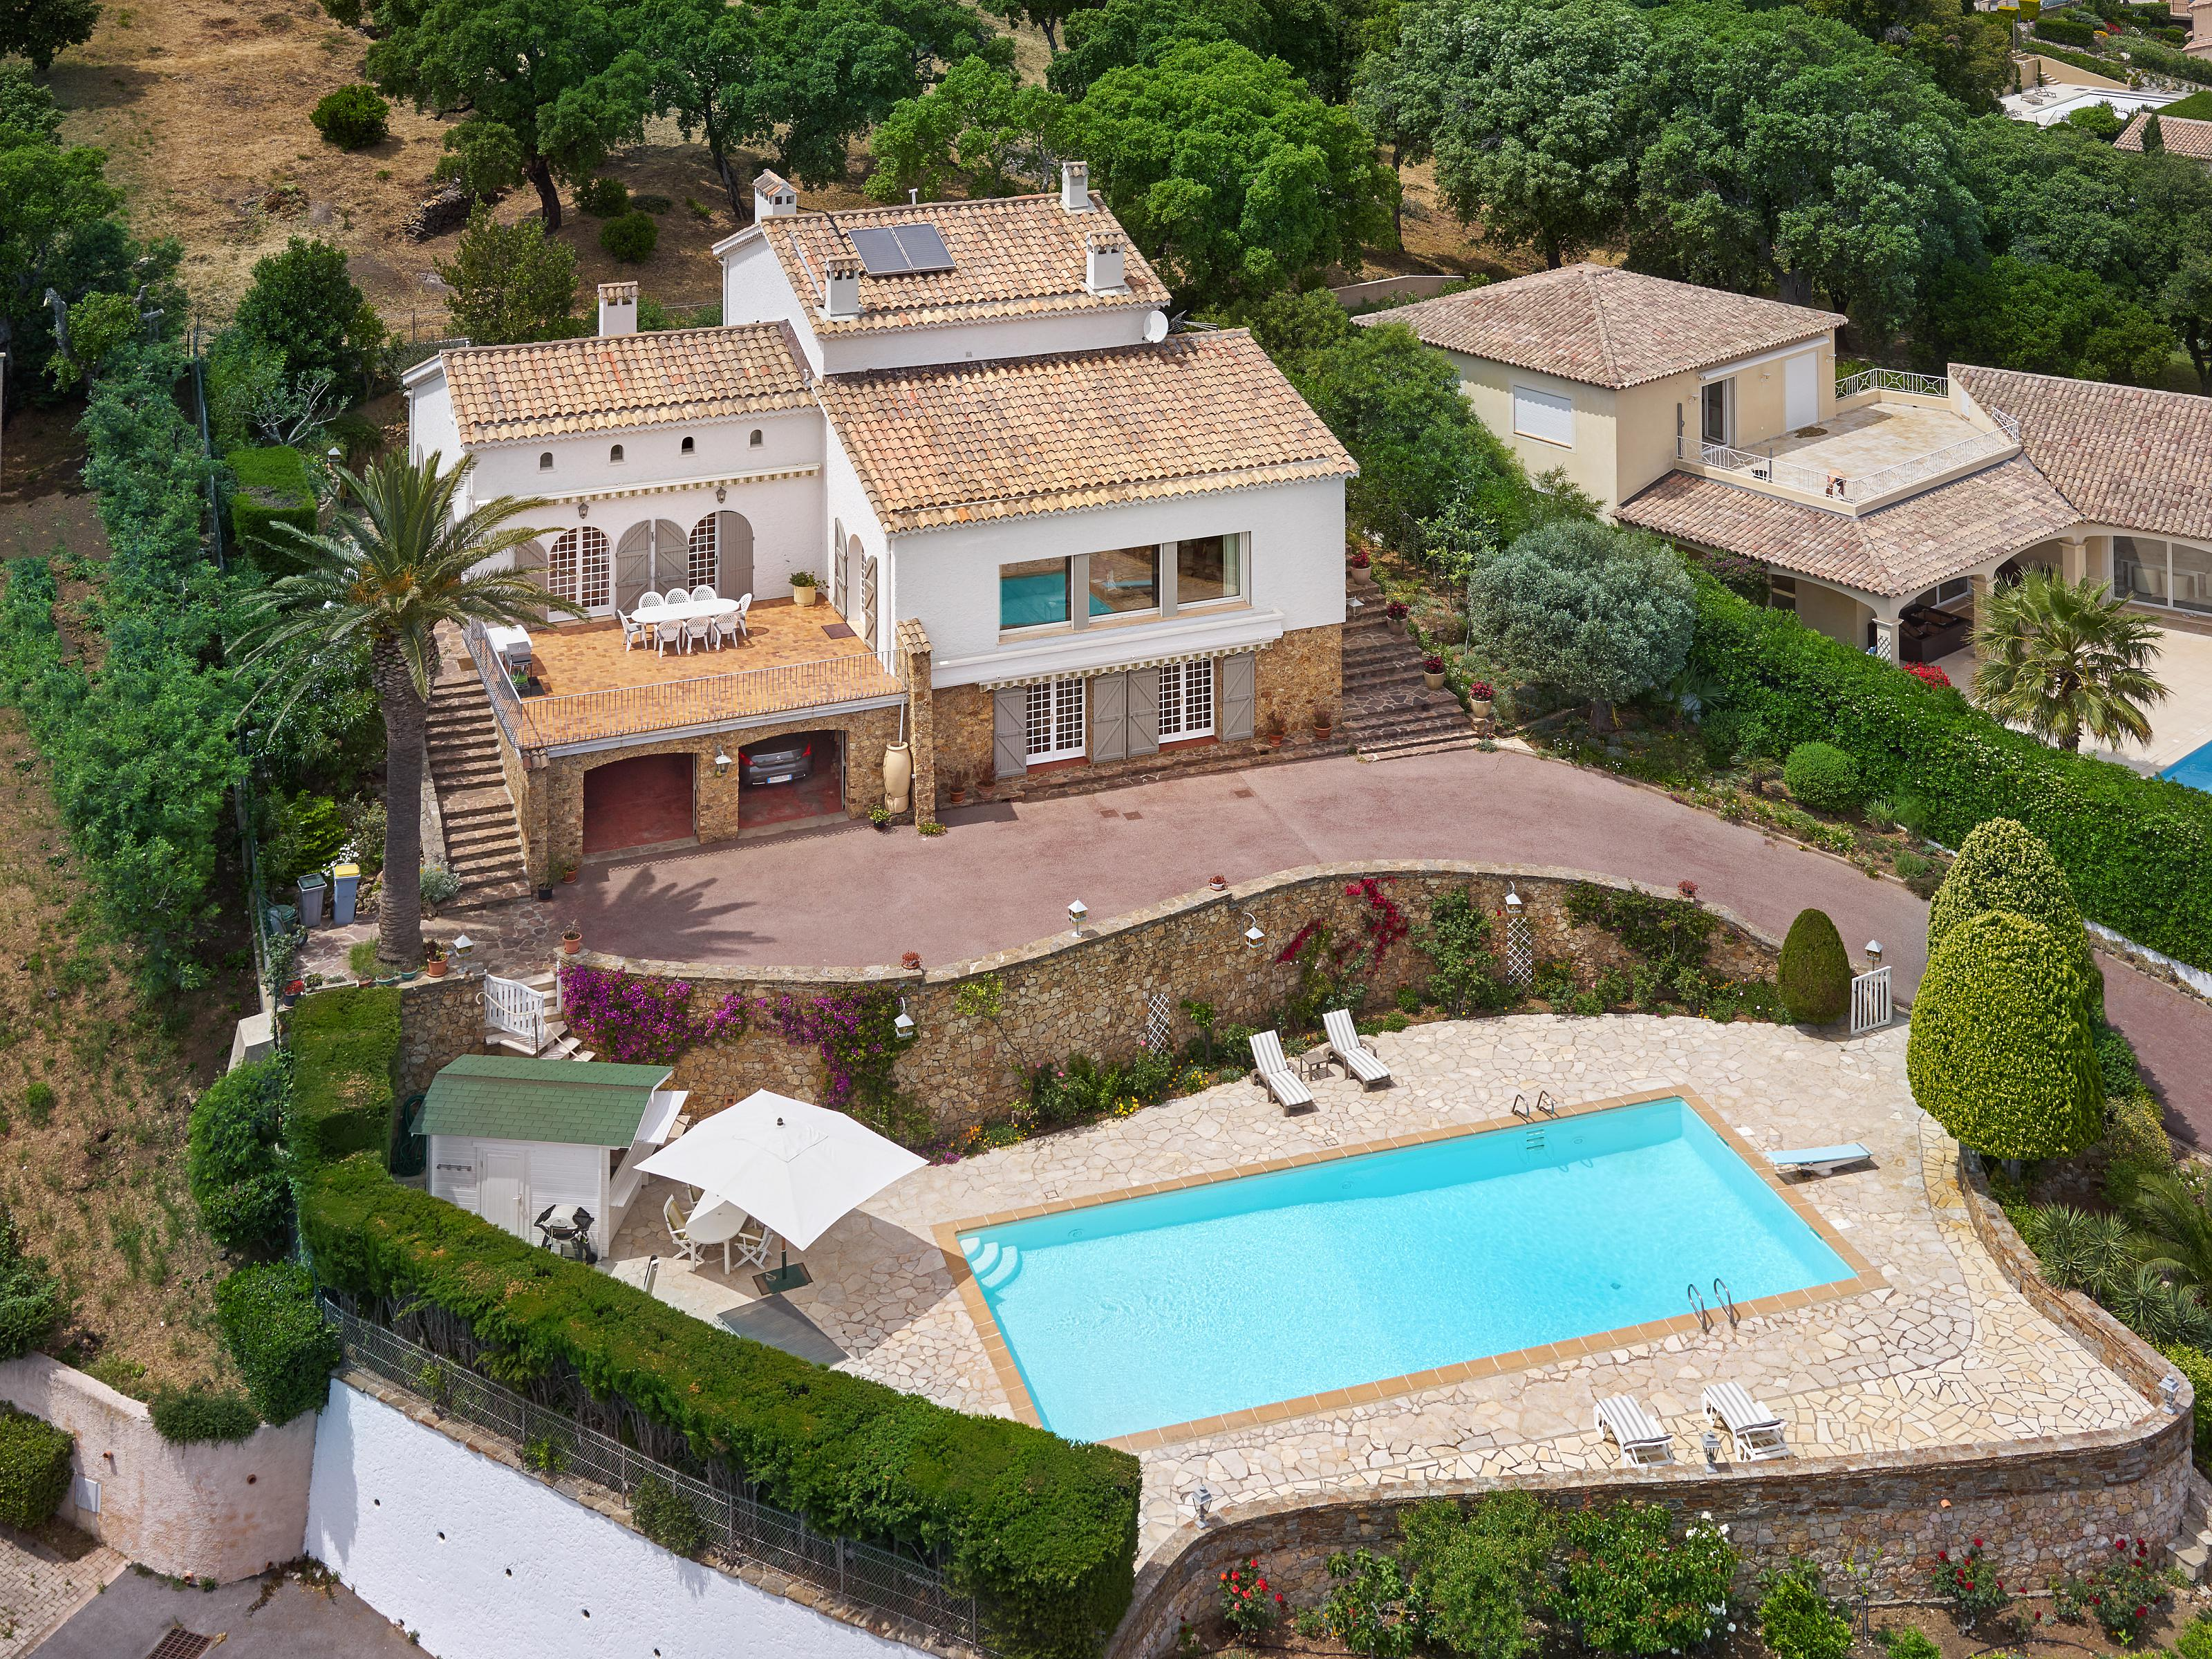 Villa per Vendita alle ore Villa close to the beach - Panoramic sea views Saint Maxime Other Provence-Alpes-Cote D'Azur, Provenza-Alpi-Costa Azzurra 83380 Francia